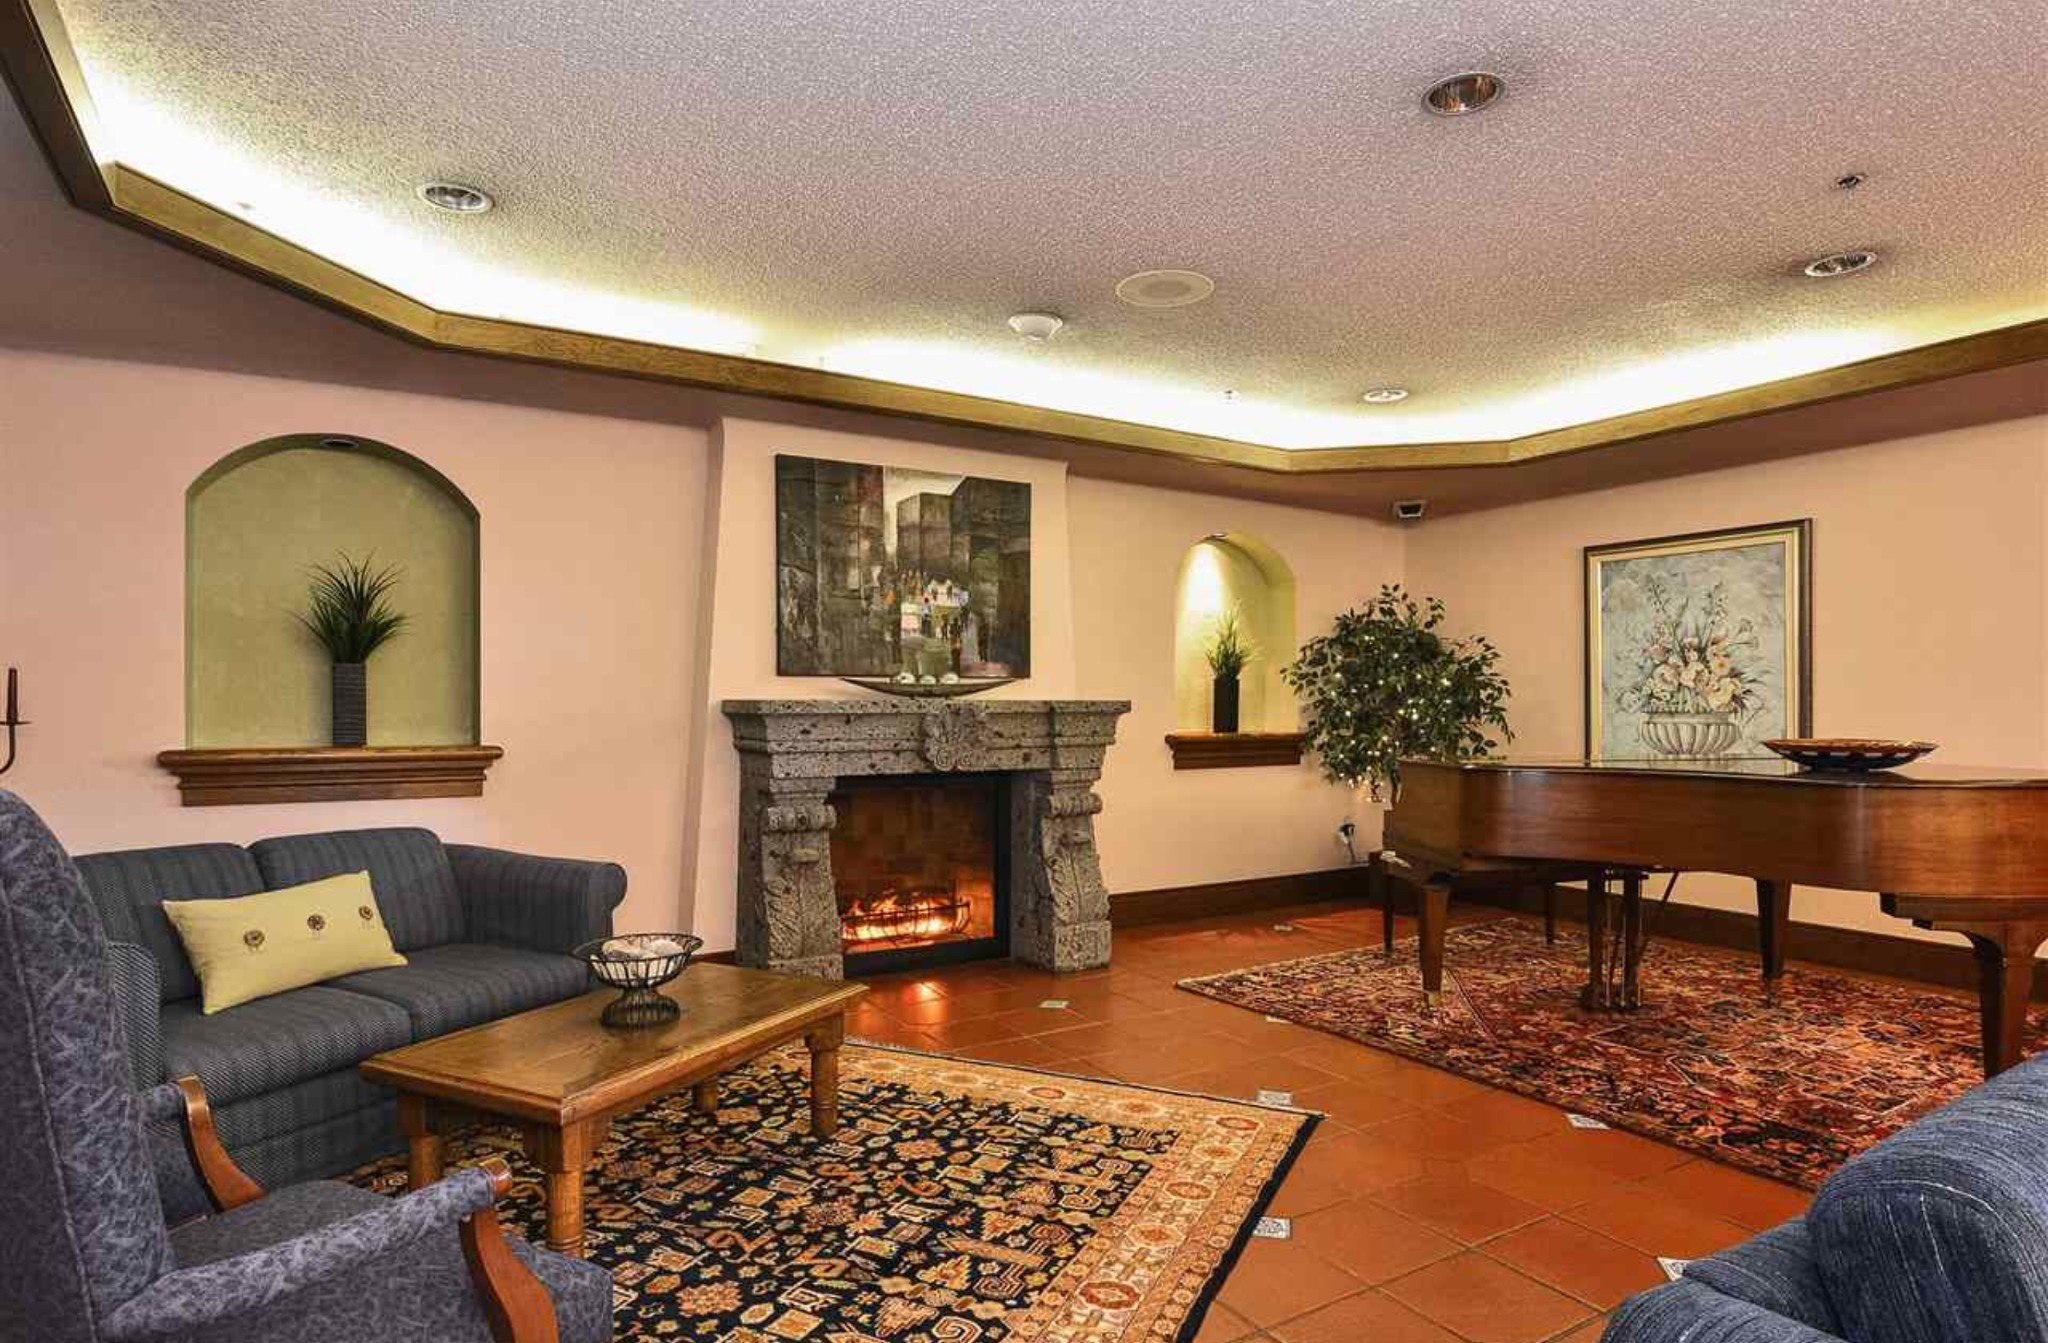 Photo 17: Photos: 405, 15111 Russell Avenue: White Rock Condo for sale (South Surrey White Rock)  : MLS®# R2133728